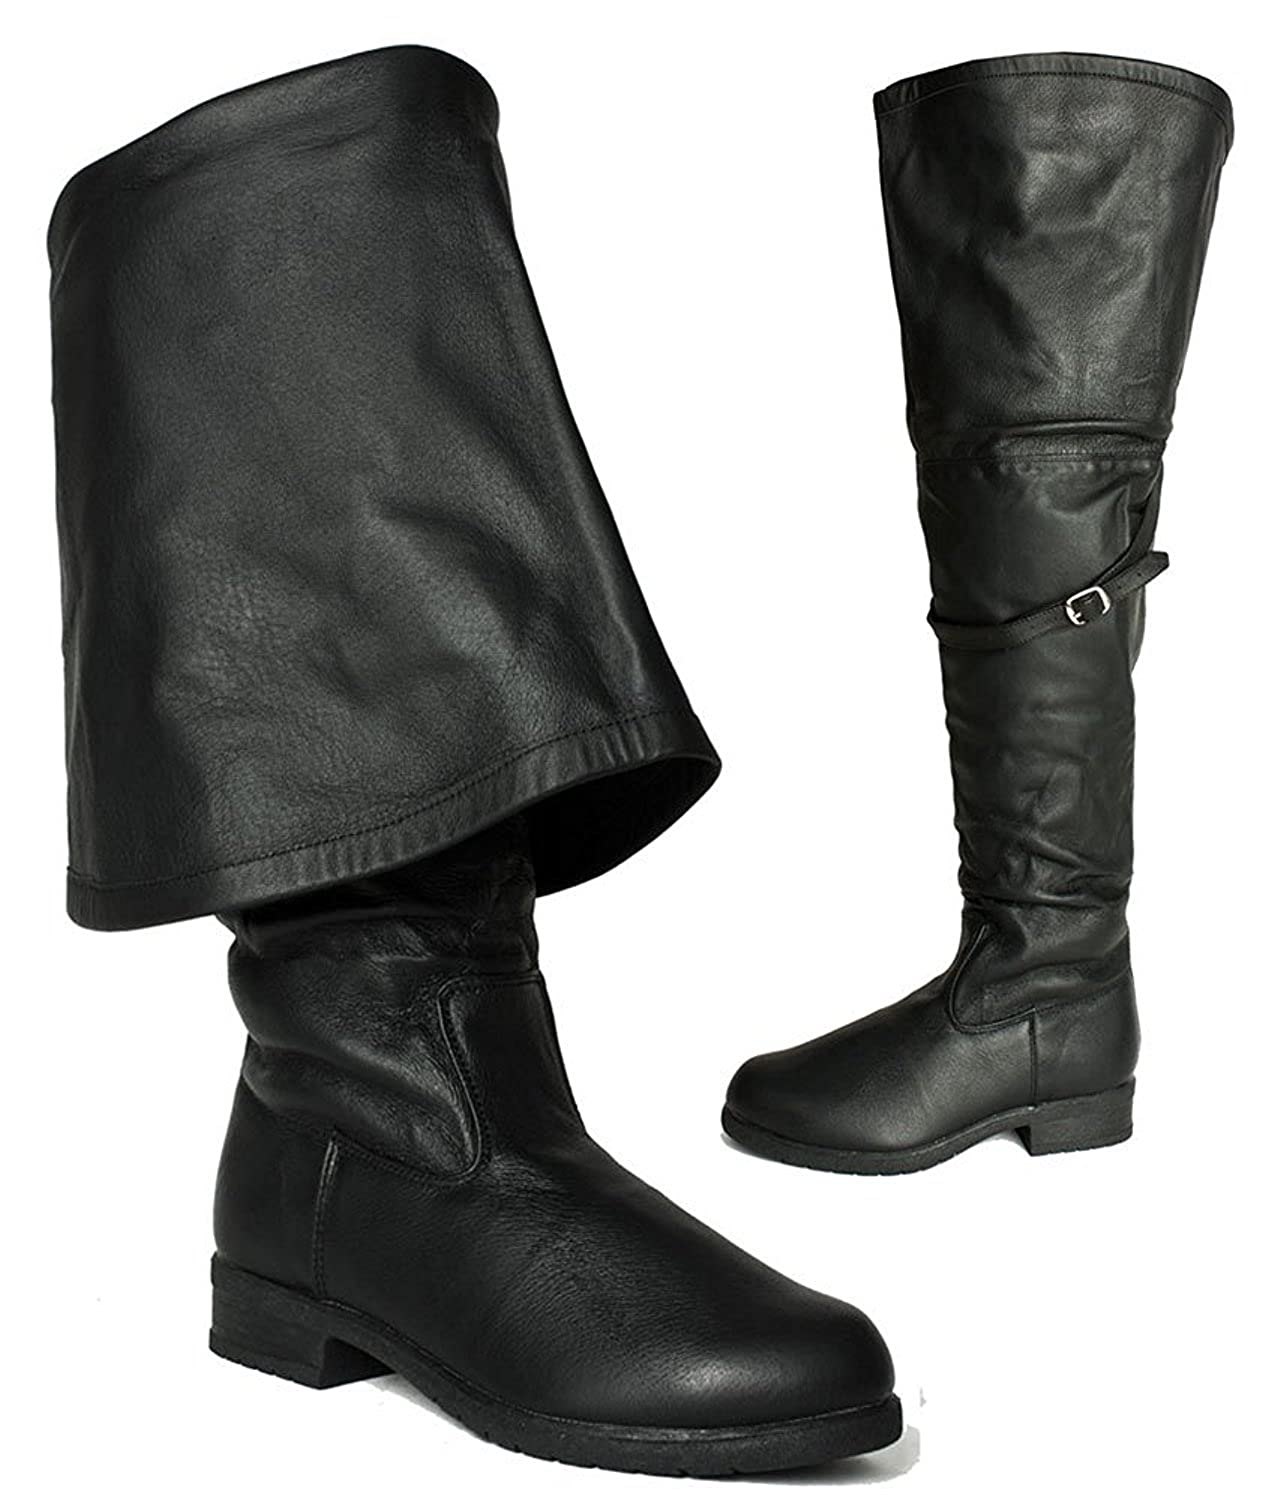 Deluxe Adult Costumes - Men's black Aassassin's Creed, Renaissance, Medieval, or pirate cosplay costume genuine leather boots.